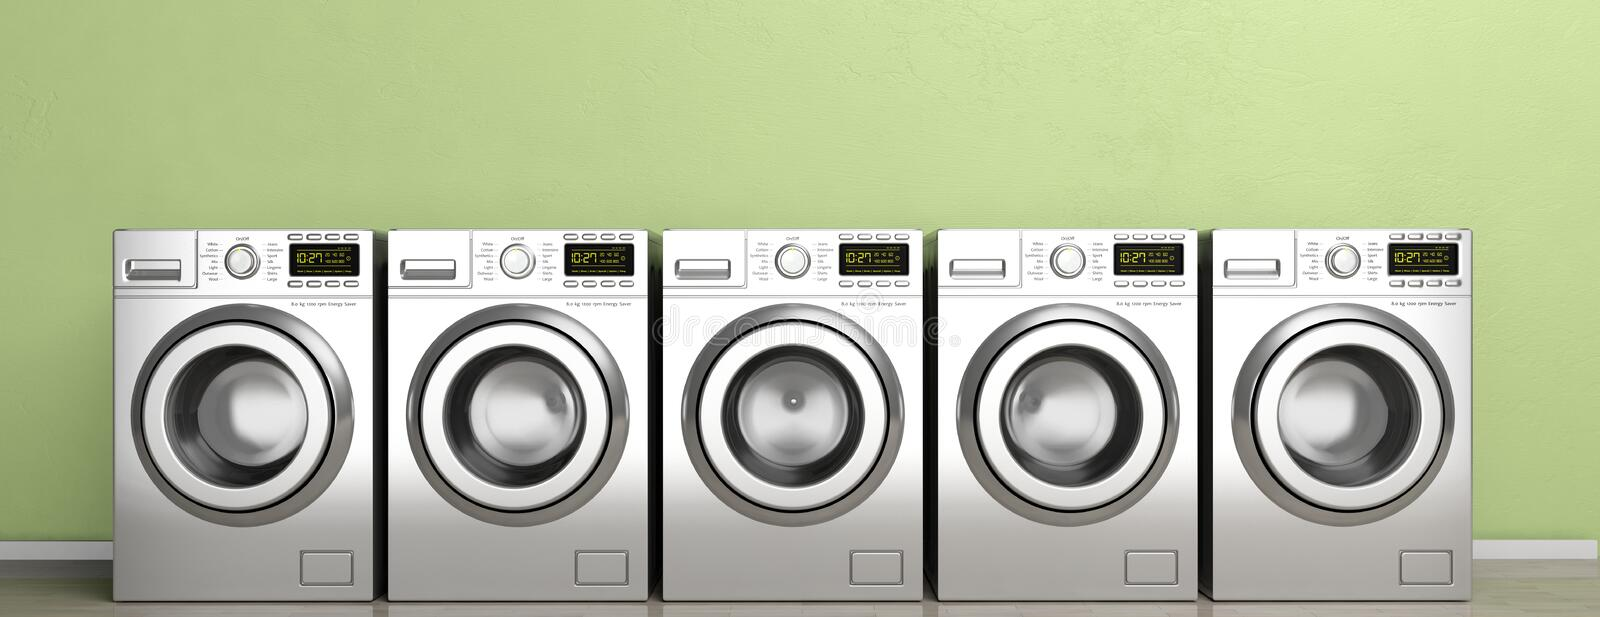 Clothes washers, dryer machines on wooden floor, green wall background, banner. 3d illustration vector illustration